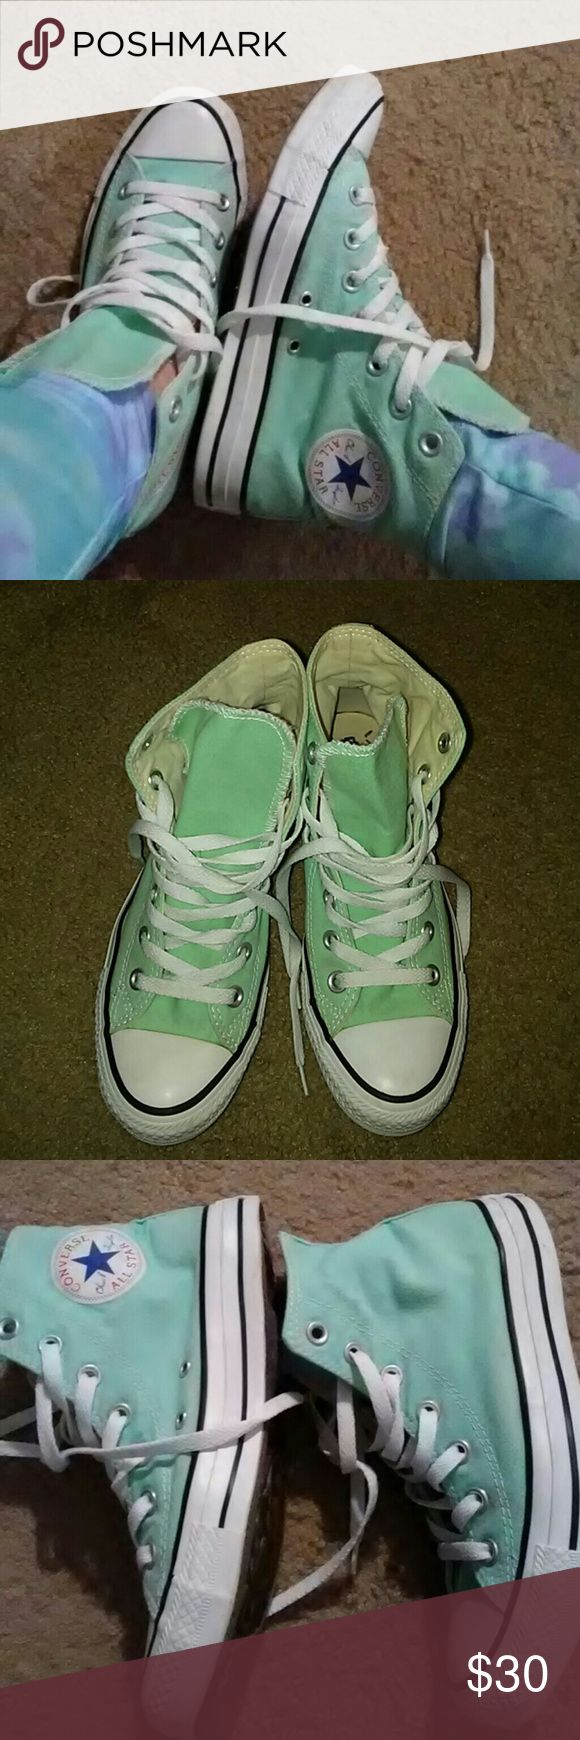 Mint green converse allstars. High tops. Light mint green pastel. So cute. Very few minor flaws. Only worn a few times. Says size 5. Fits a womens 7 Converse Shoes Sneakers